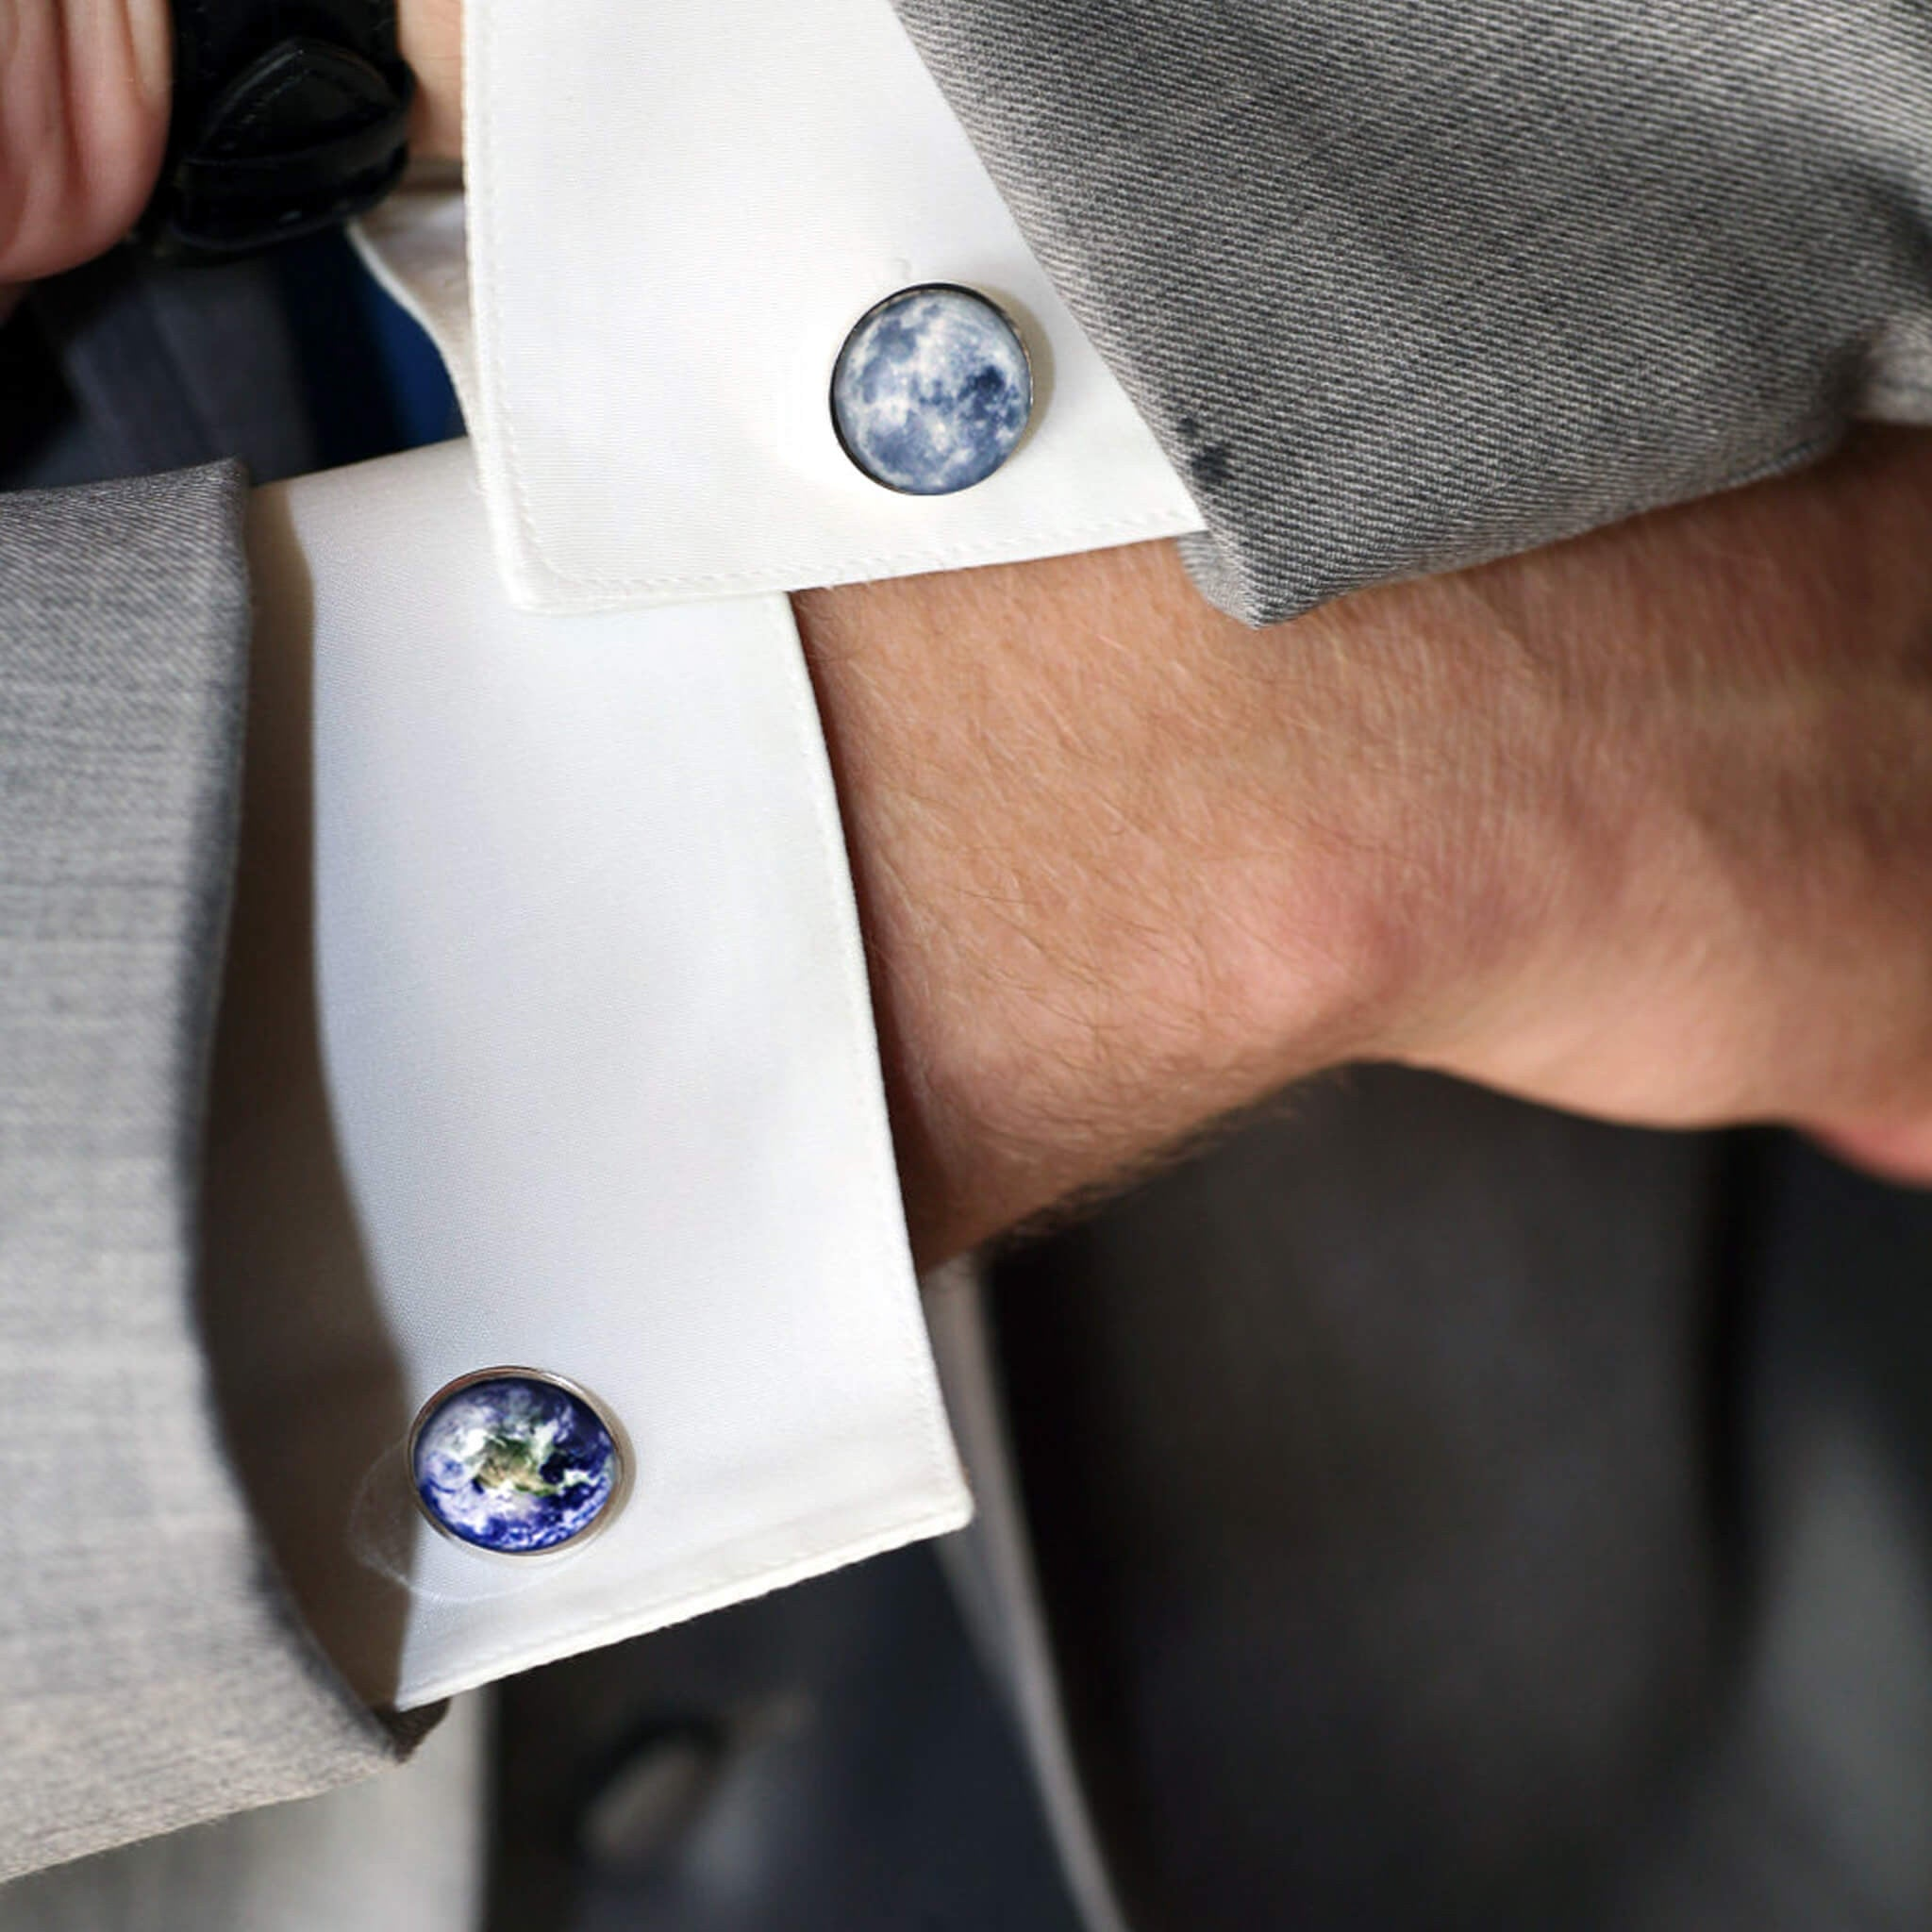 Modeled Earth and Moon Cufflinks - Customized with your choice of planet, nebula, cosmic body, galaxy - Milky Way, Astronomy STEM Accessories for Men - Handcrafted Jewelry by Yugen Tribe inspired by the Universe